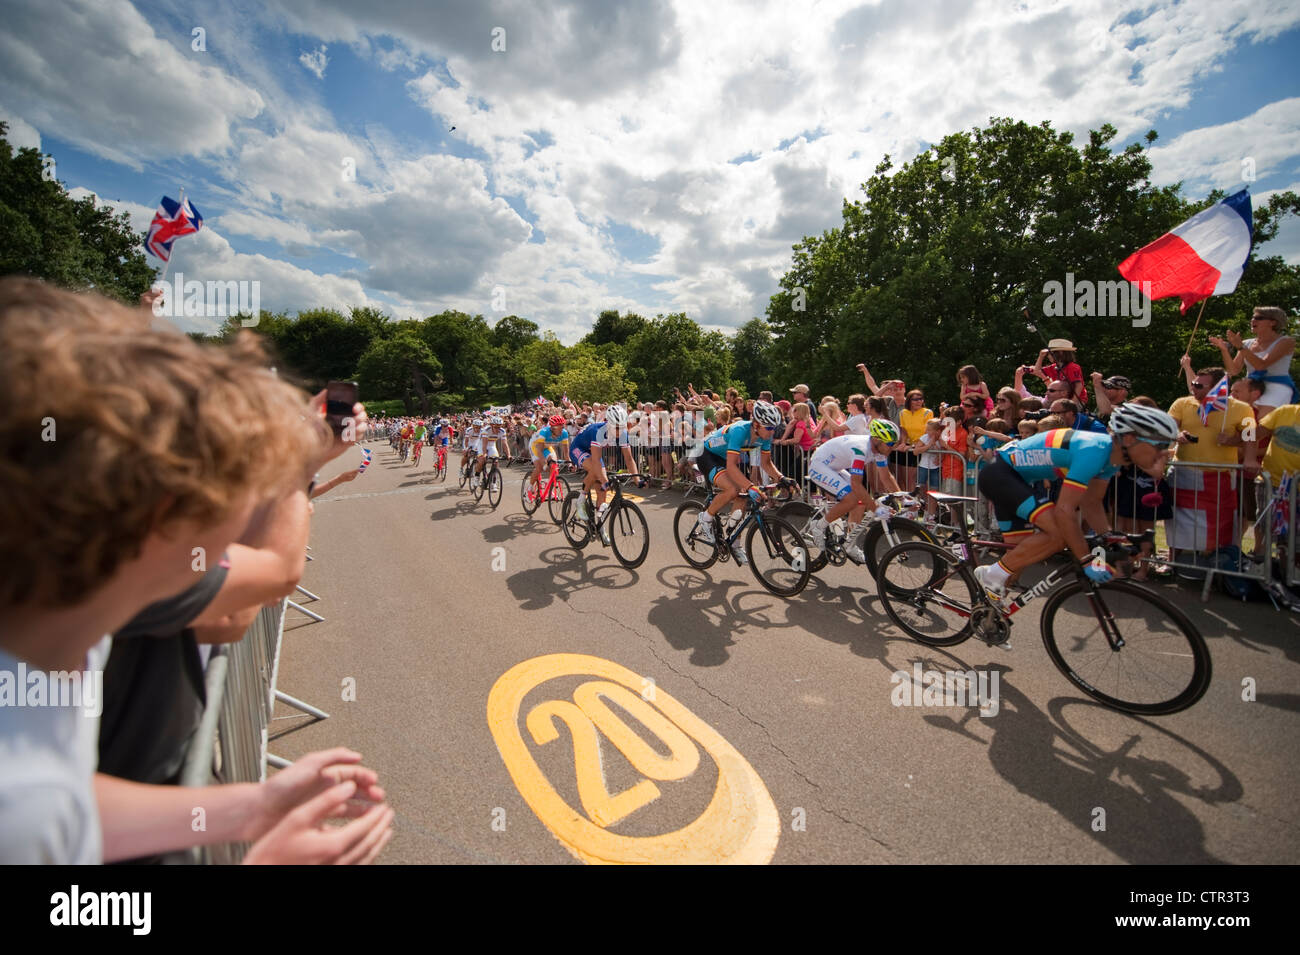 London Olympic Games 2012, Cycling; Mens Road Race inbound in Richmond Park 28.7.12 with cheering spectators - Stock Image